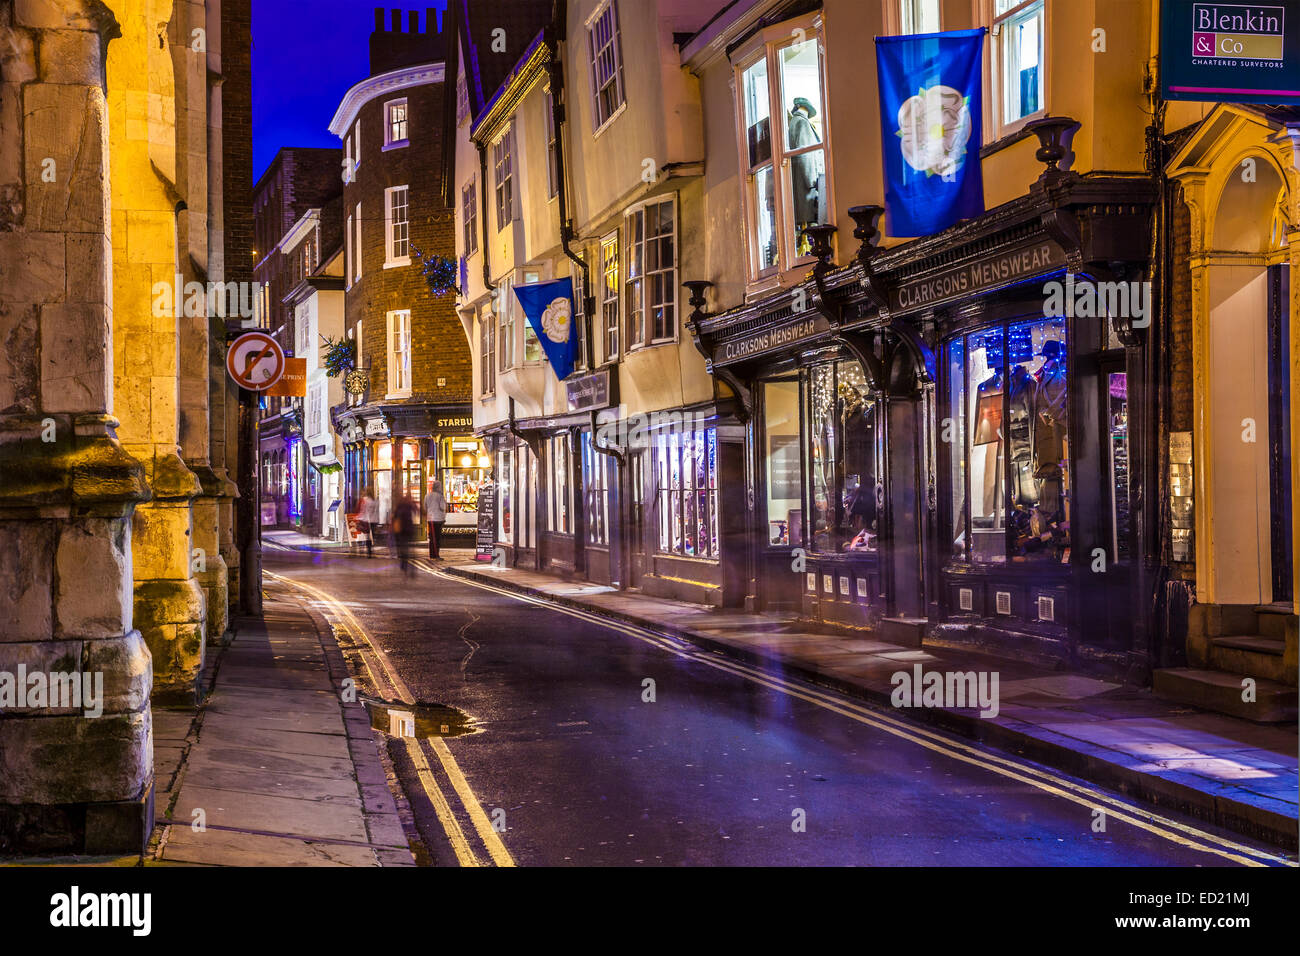 High Petergate in the city of York at twilight. - Stock Image